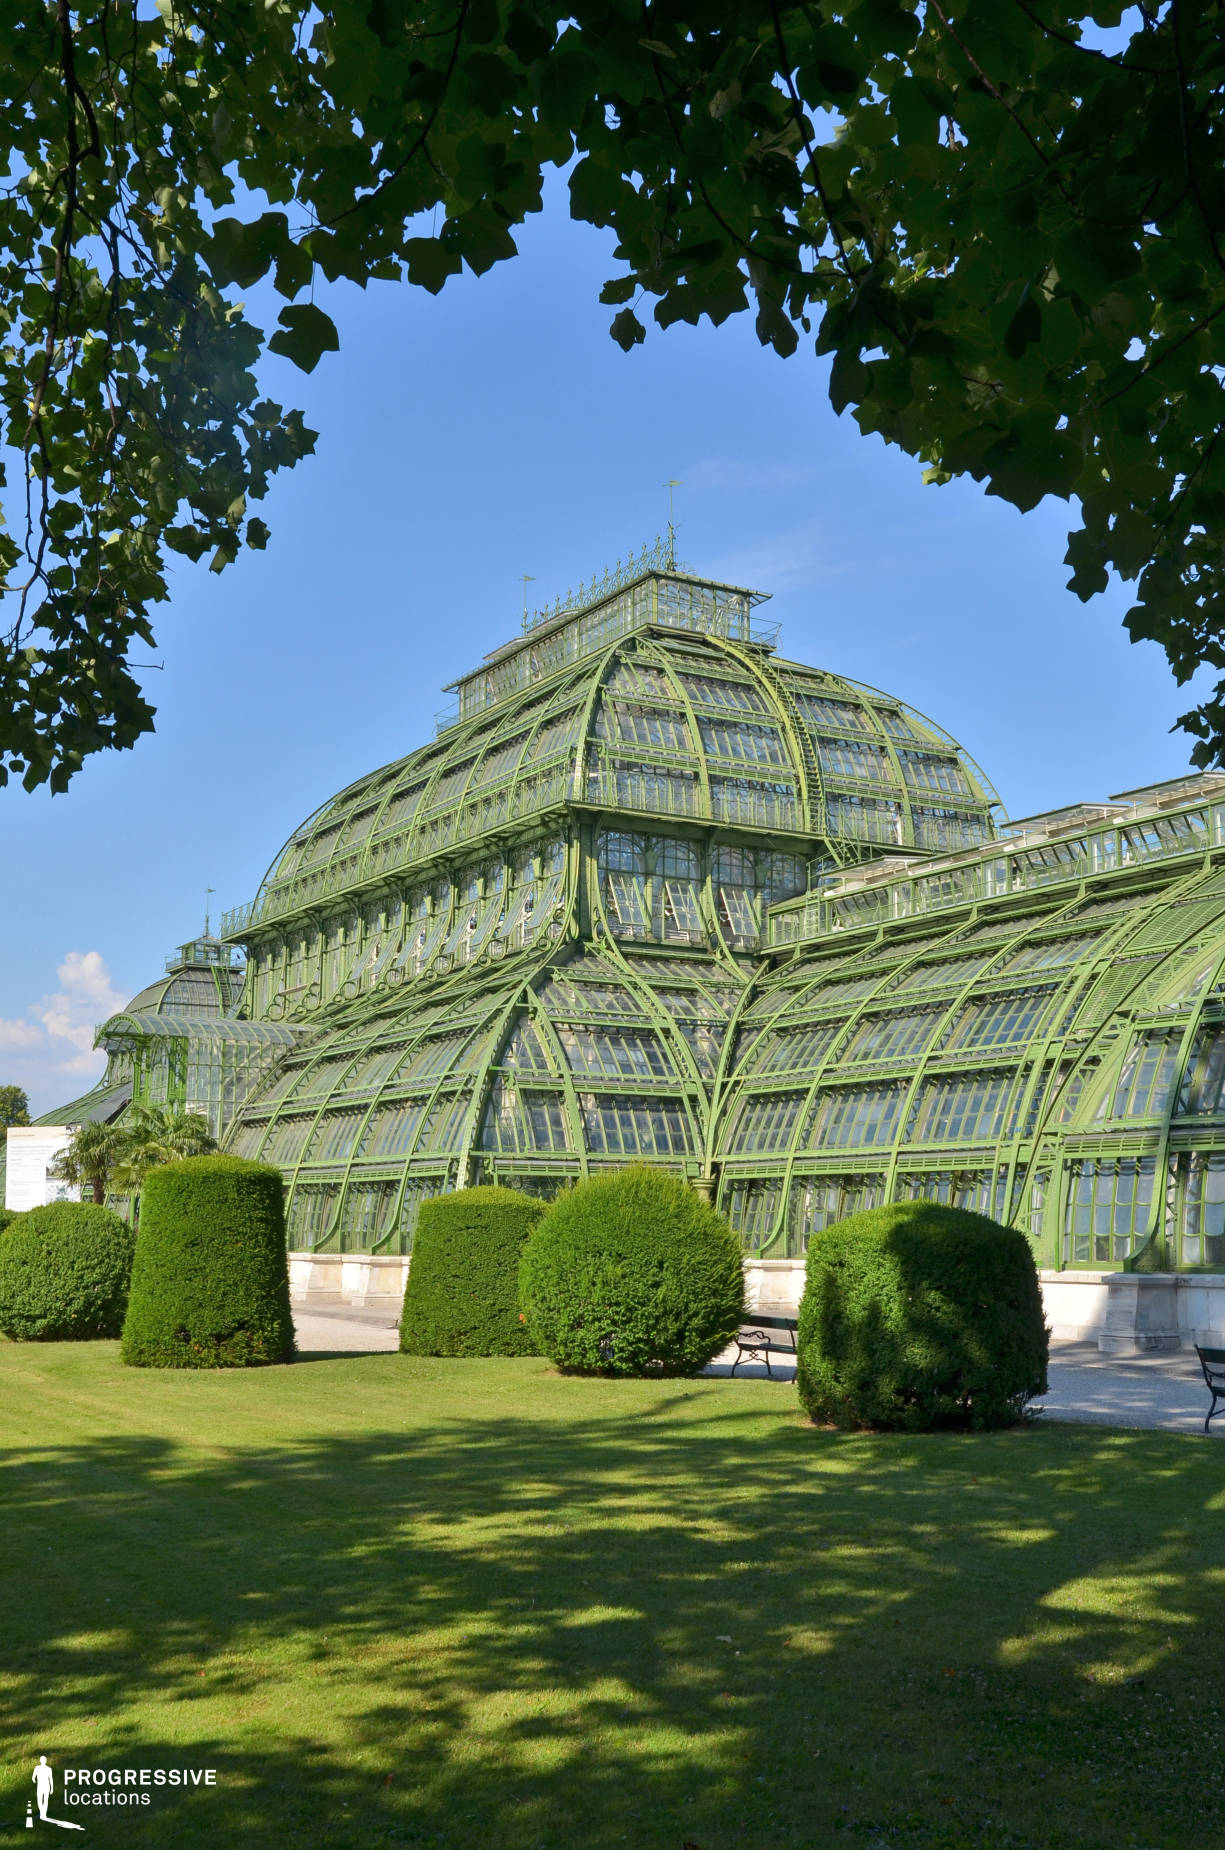 Locations in Austria: Palm House Exterior, Schoenbrunn Palace